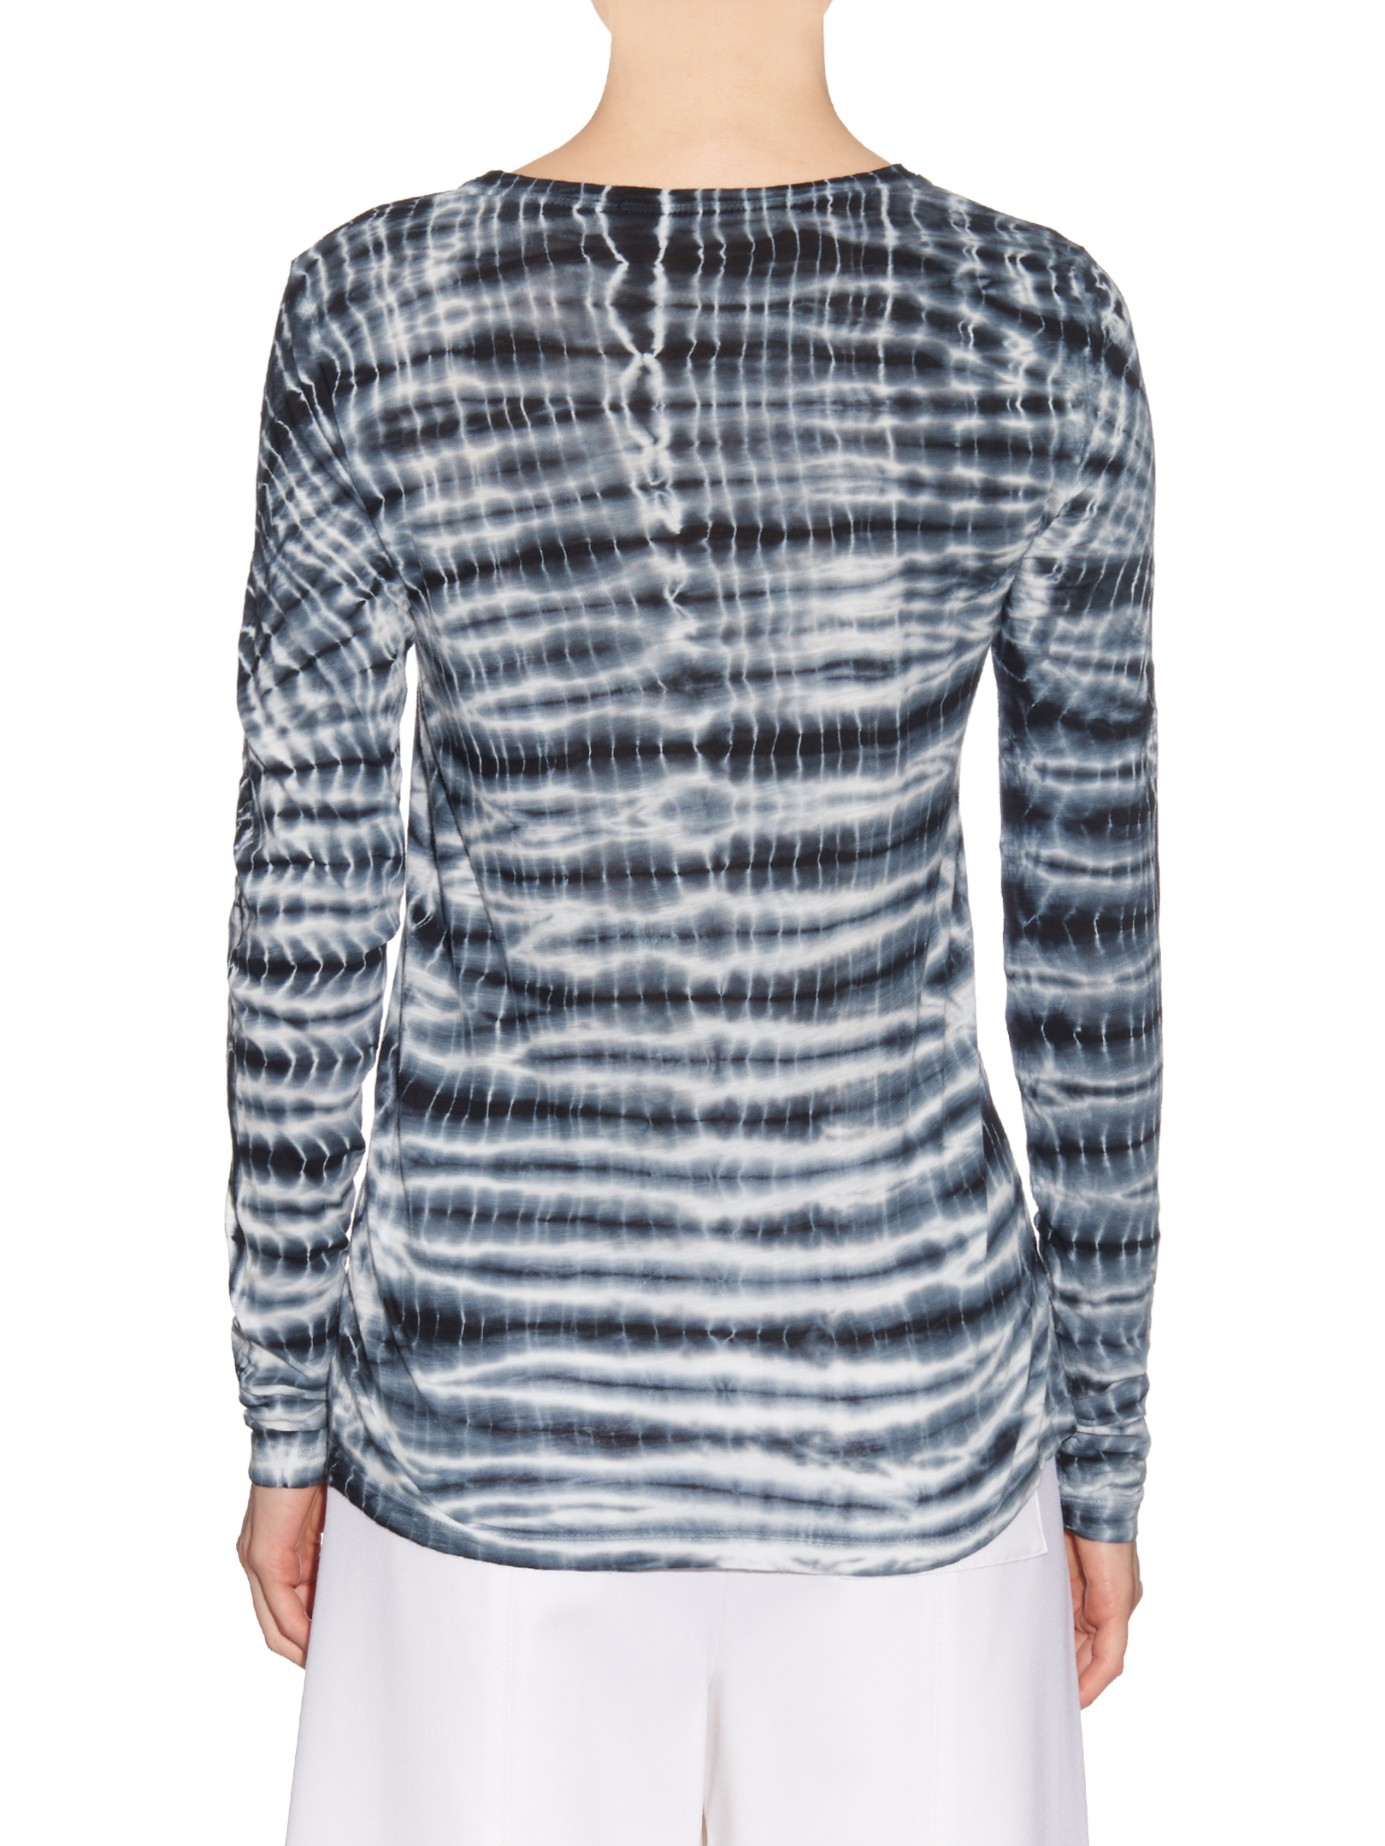 Proenza Schouler printed tied top Free Shipping Wide Range Of Lowest Price Cheap Price Discount Fashionable Free Shipping Low Price Free Shipping Footlocker Pictures bZXI8lV2r